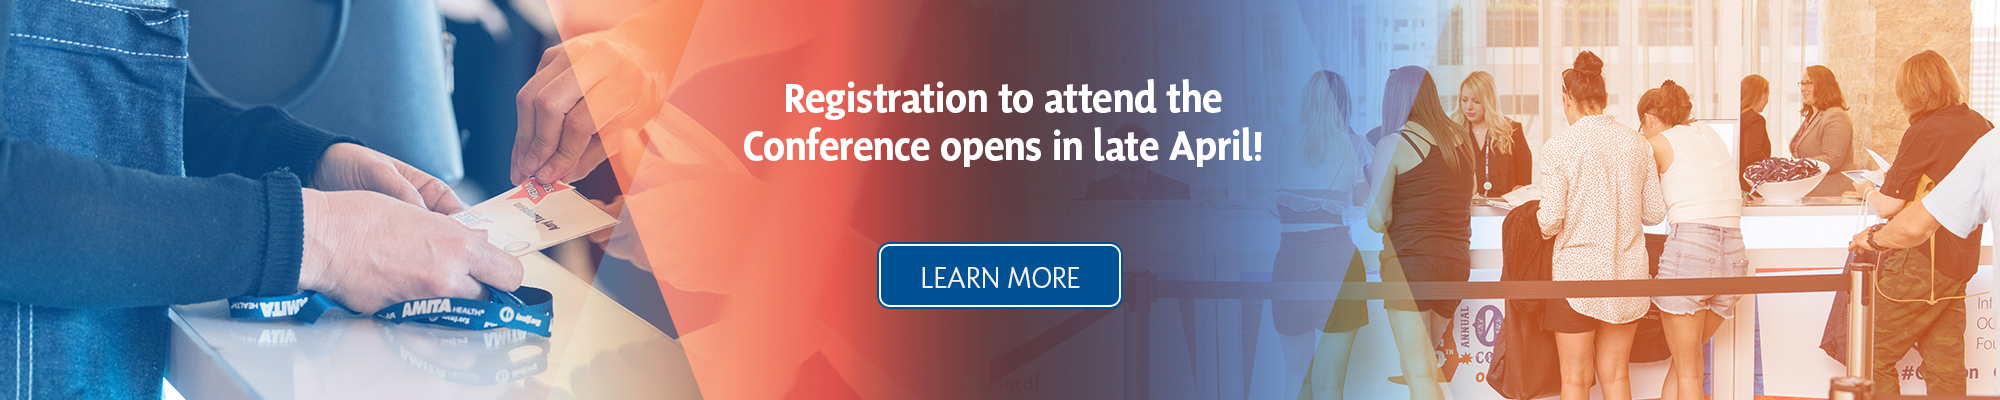 Registration for the 27th Annual OCD Conference open late March 2020